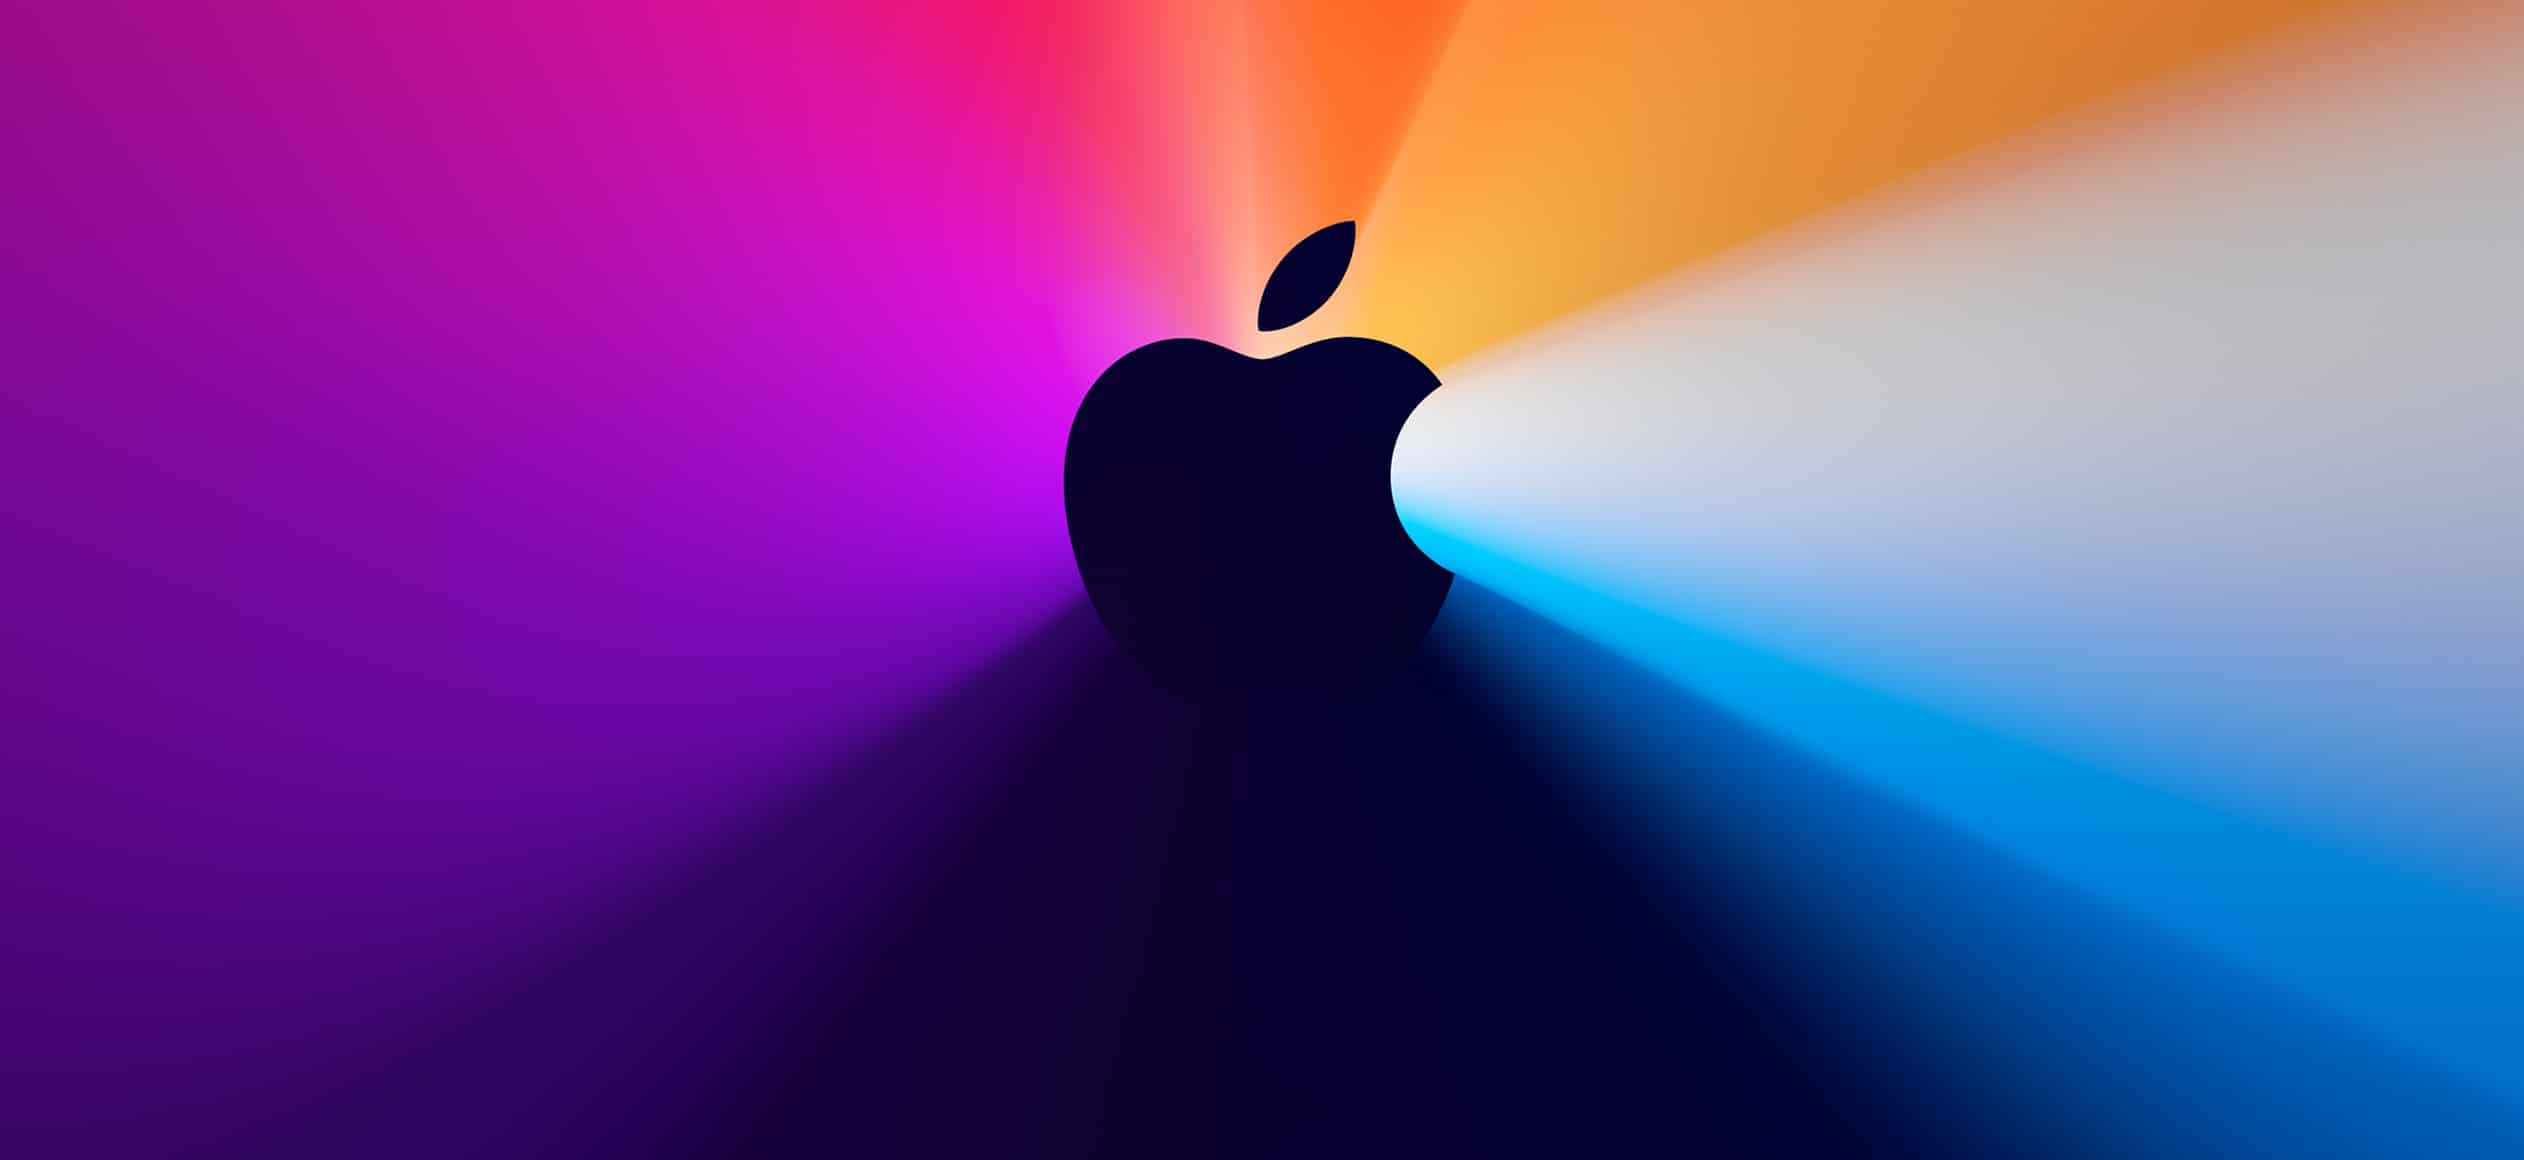 Banner do evento especial da Apple em novembro